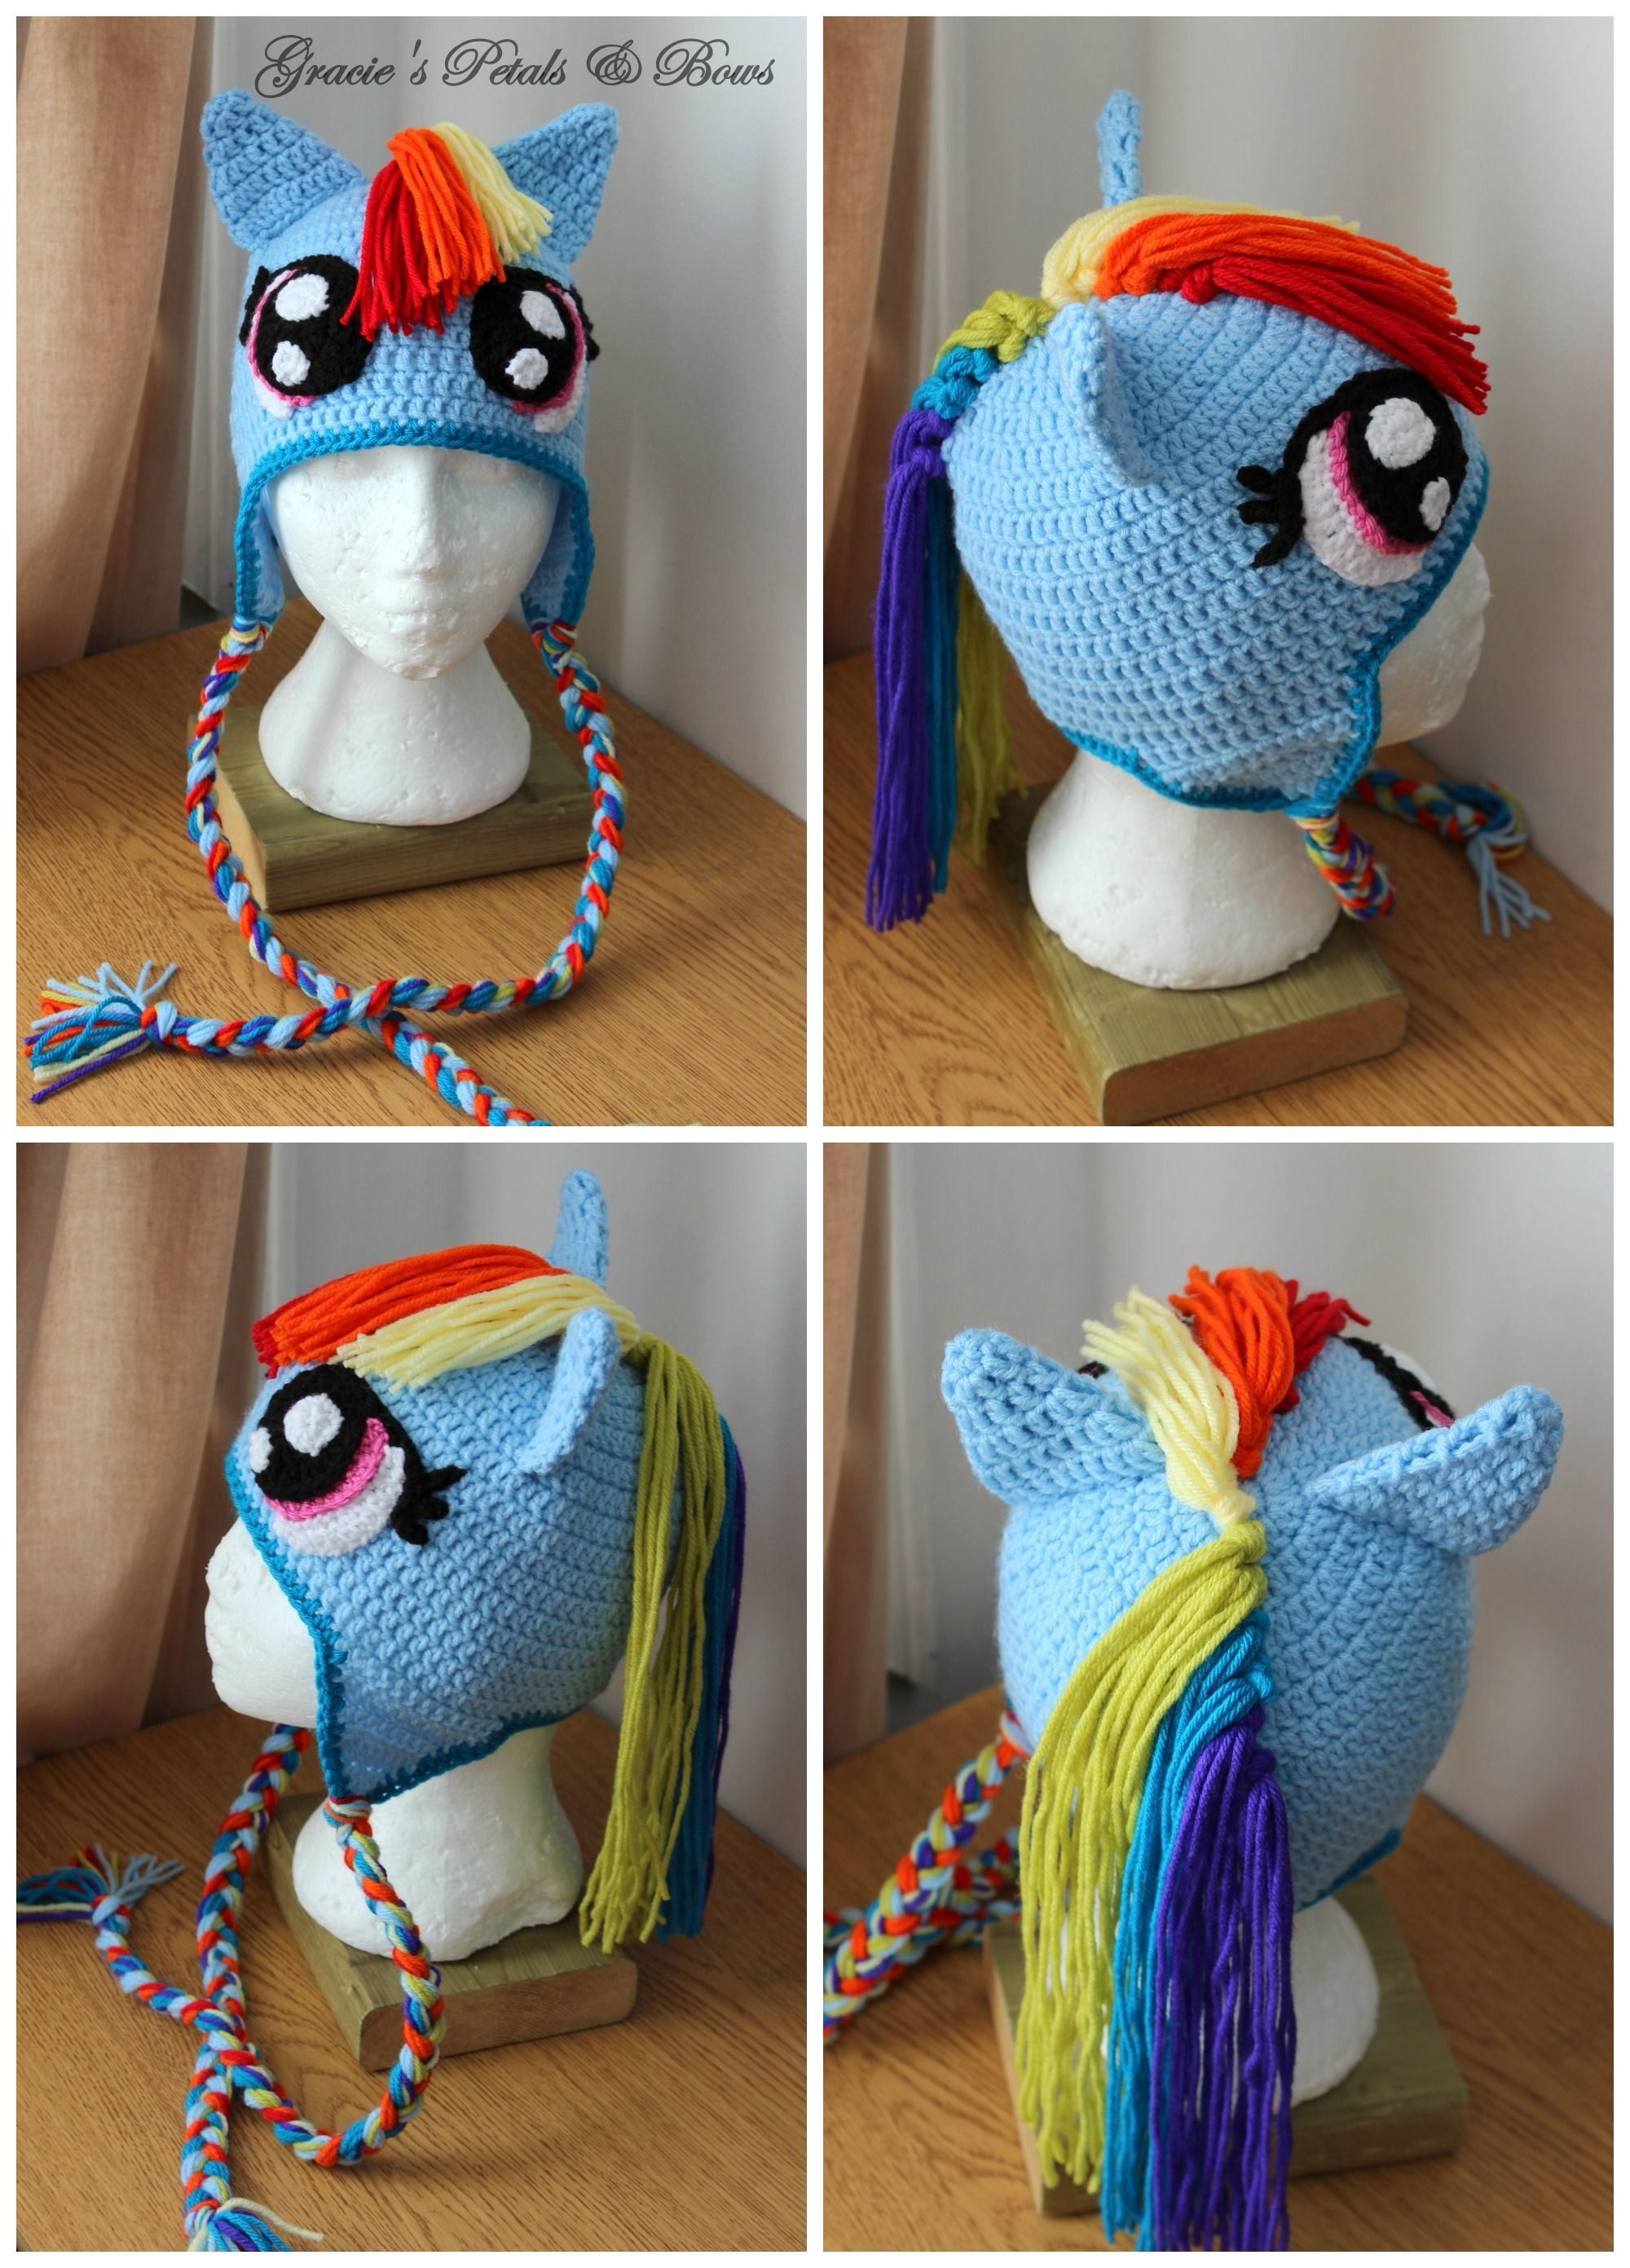 My little pony Rainbow Dash Inspired hat | Crochet | Pinterest ...